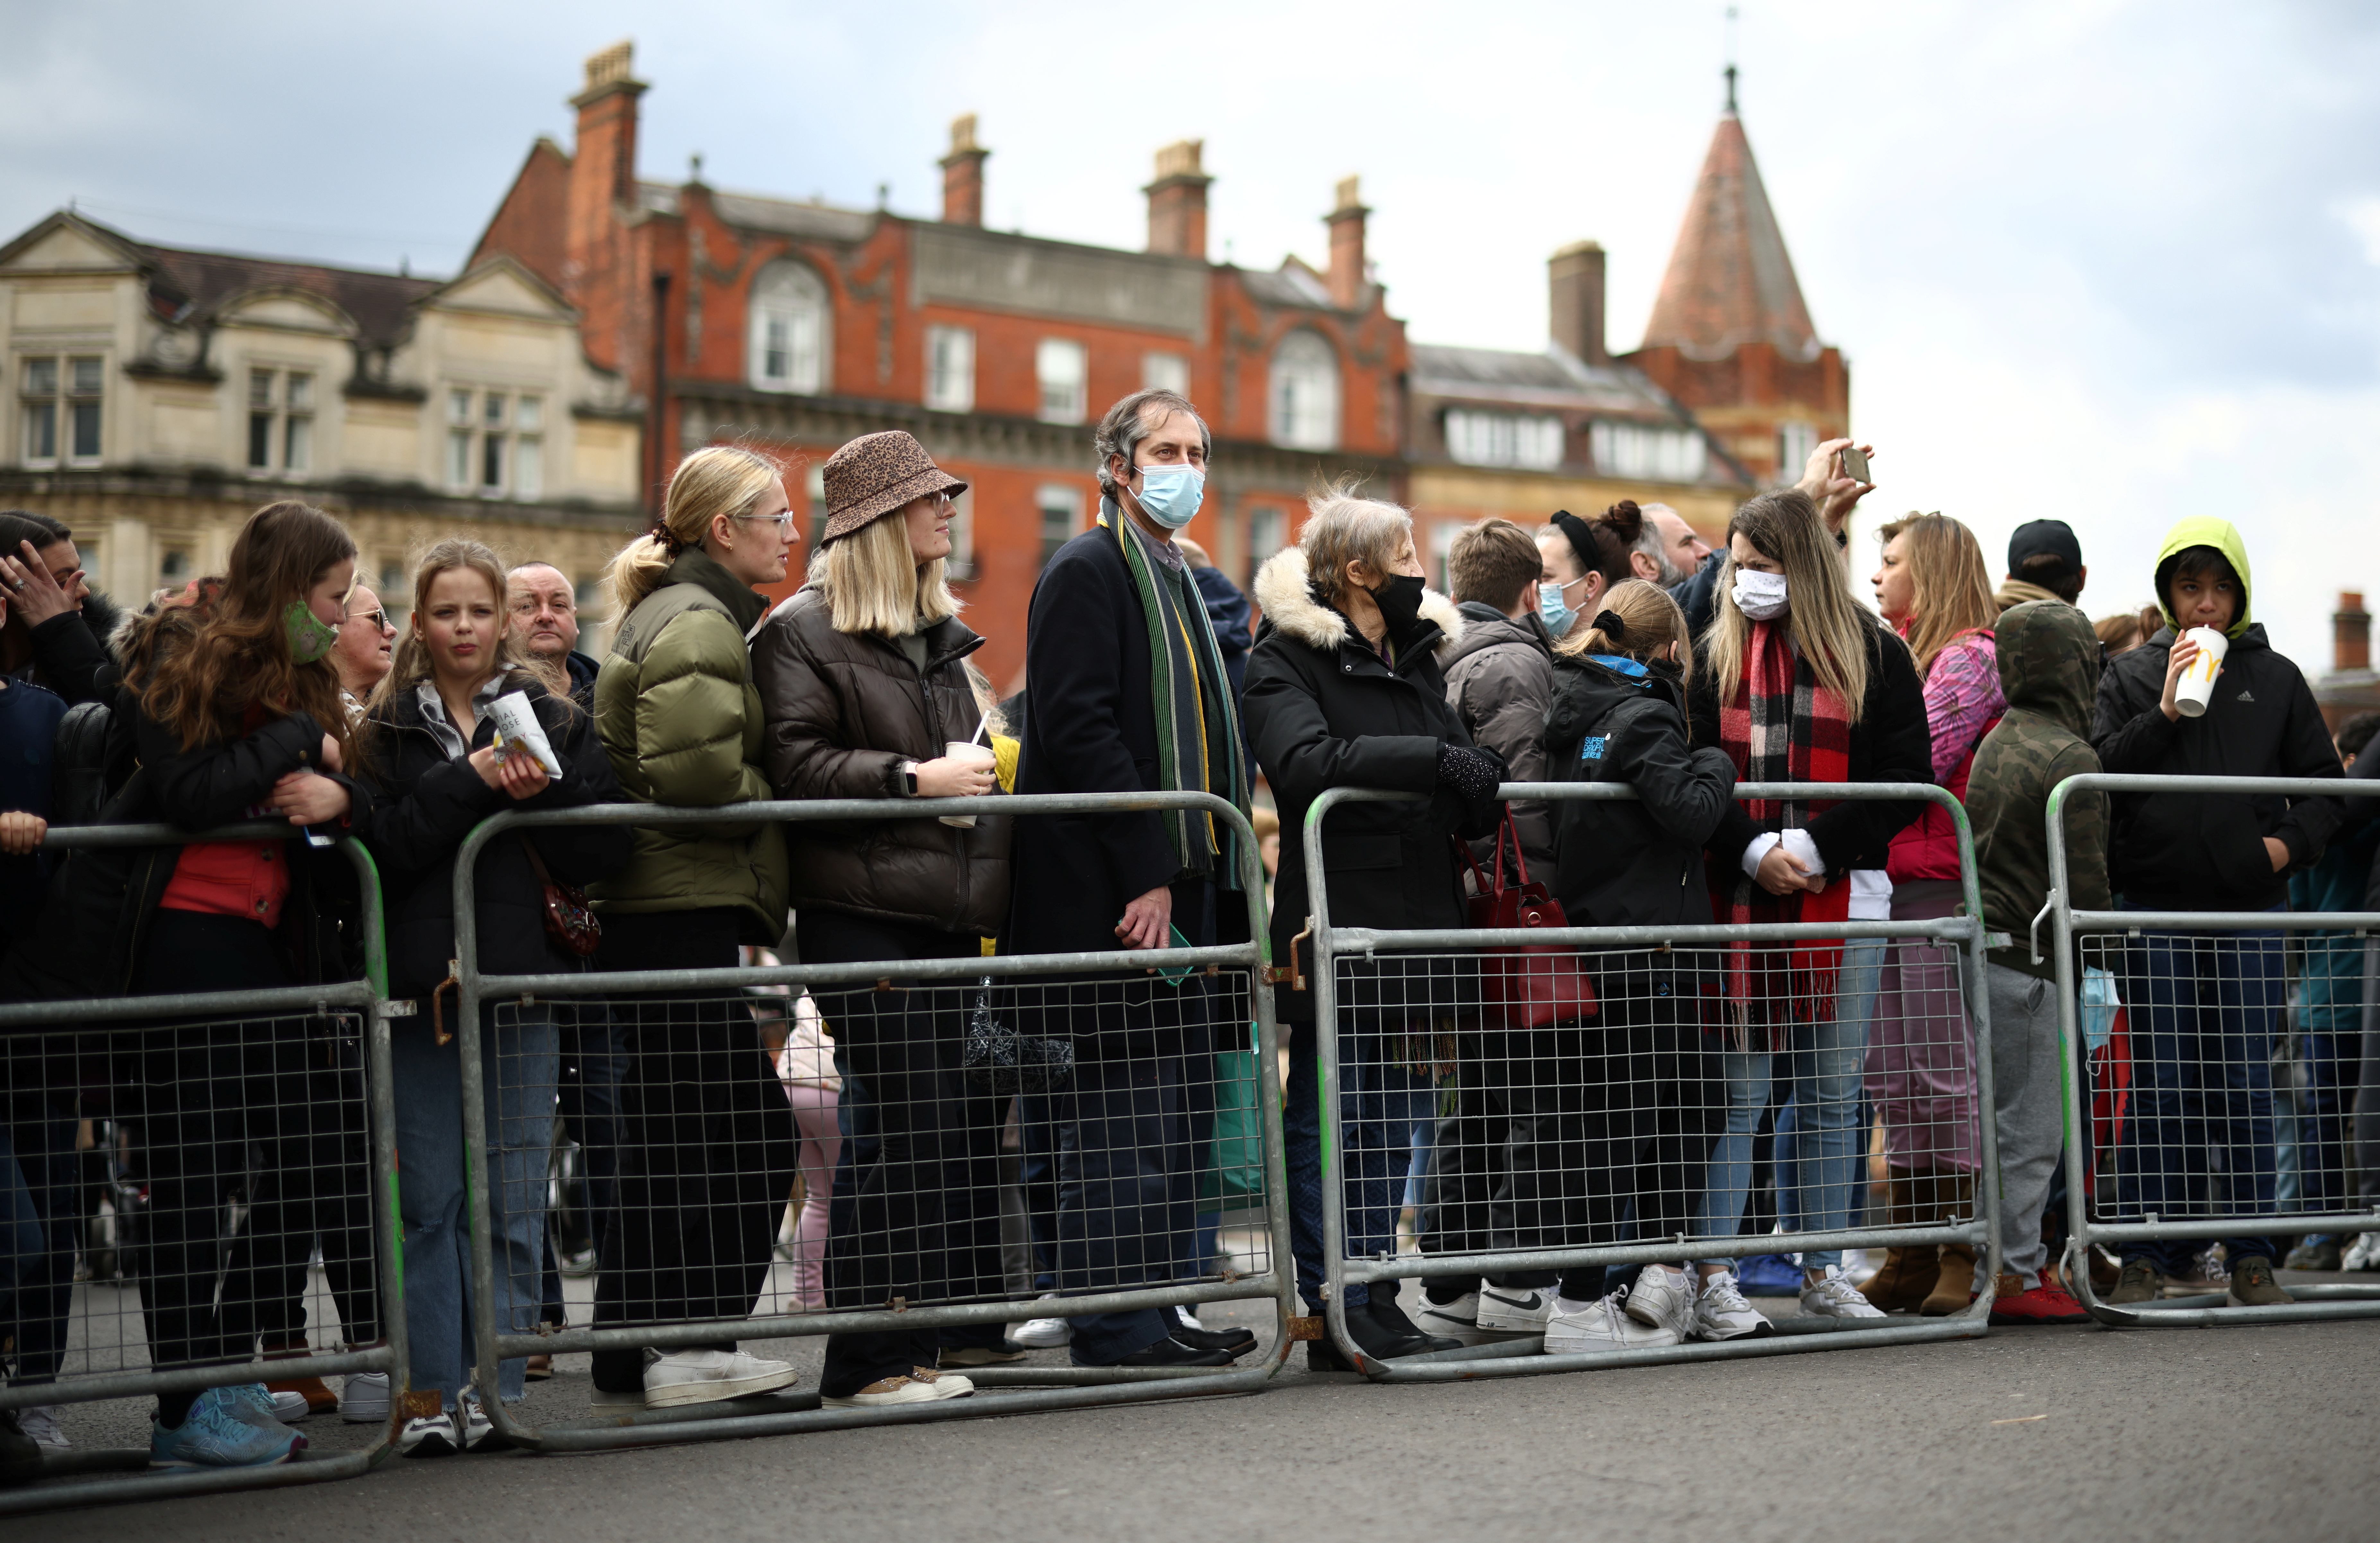 People gather outside Windsor Castle after Britain's Prince Philip, husband of Queen Elizabeth, died at the age of 99, in Windsor, near London, Britain, April 11, 2021. REUTERS/Henry Nicholls